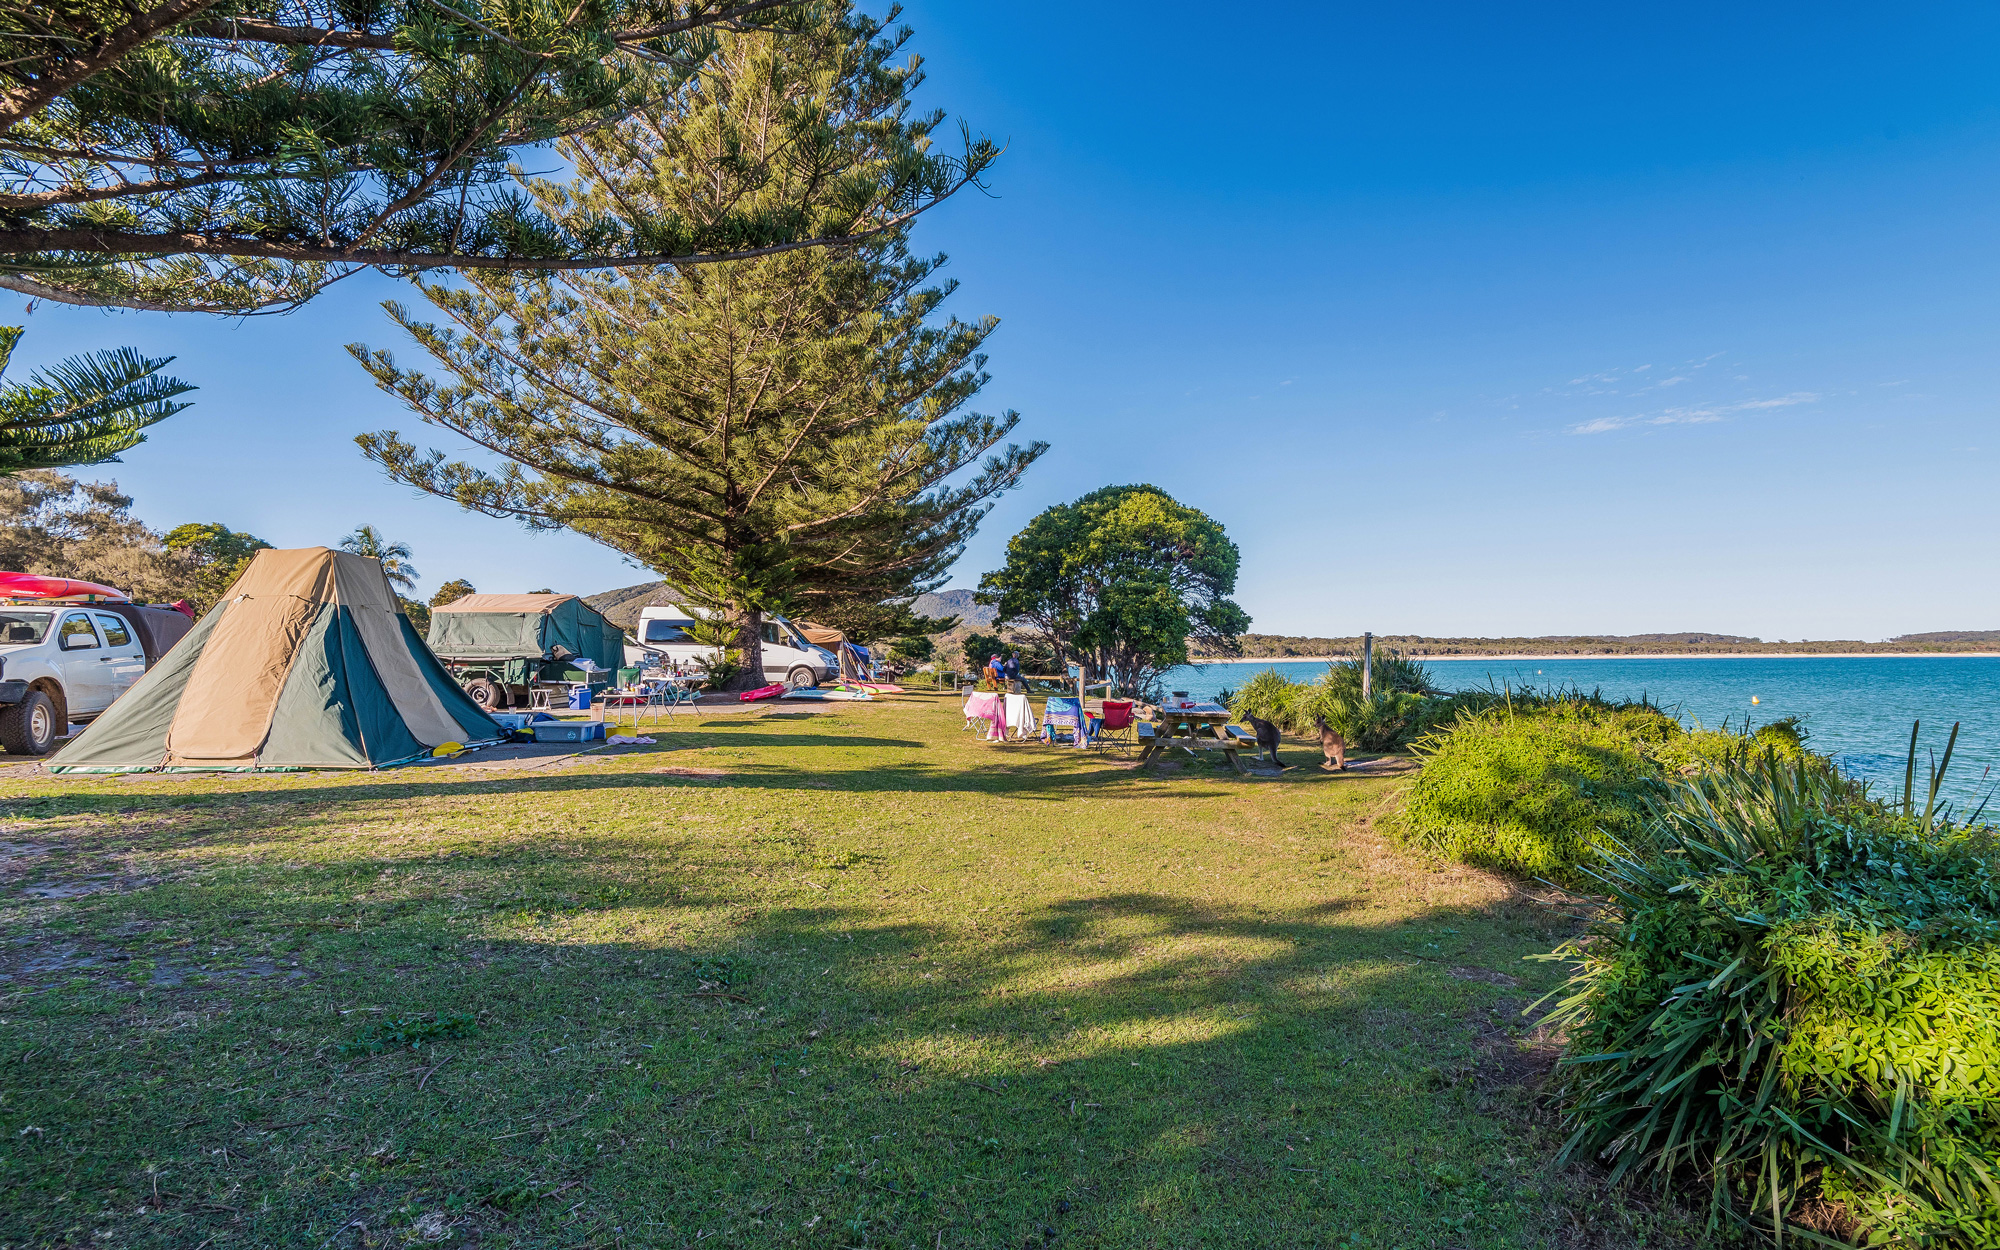 TRIAL BAY GAOL CAMPGROUND - Trial Bay Gaol campground is right by the beach and perfect for a family camping holiday. Bring your caravan, motorhome or tent for a weekend of swimming, fishing and fun.